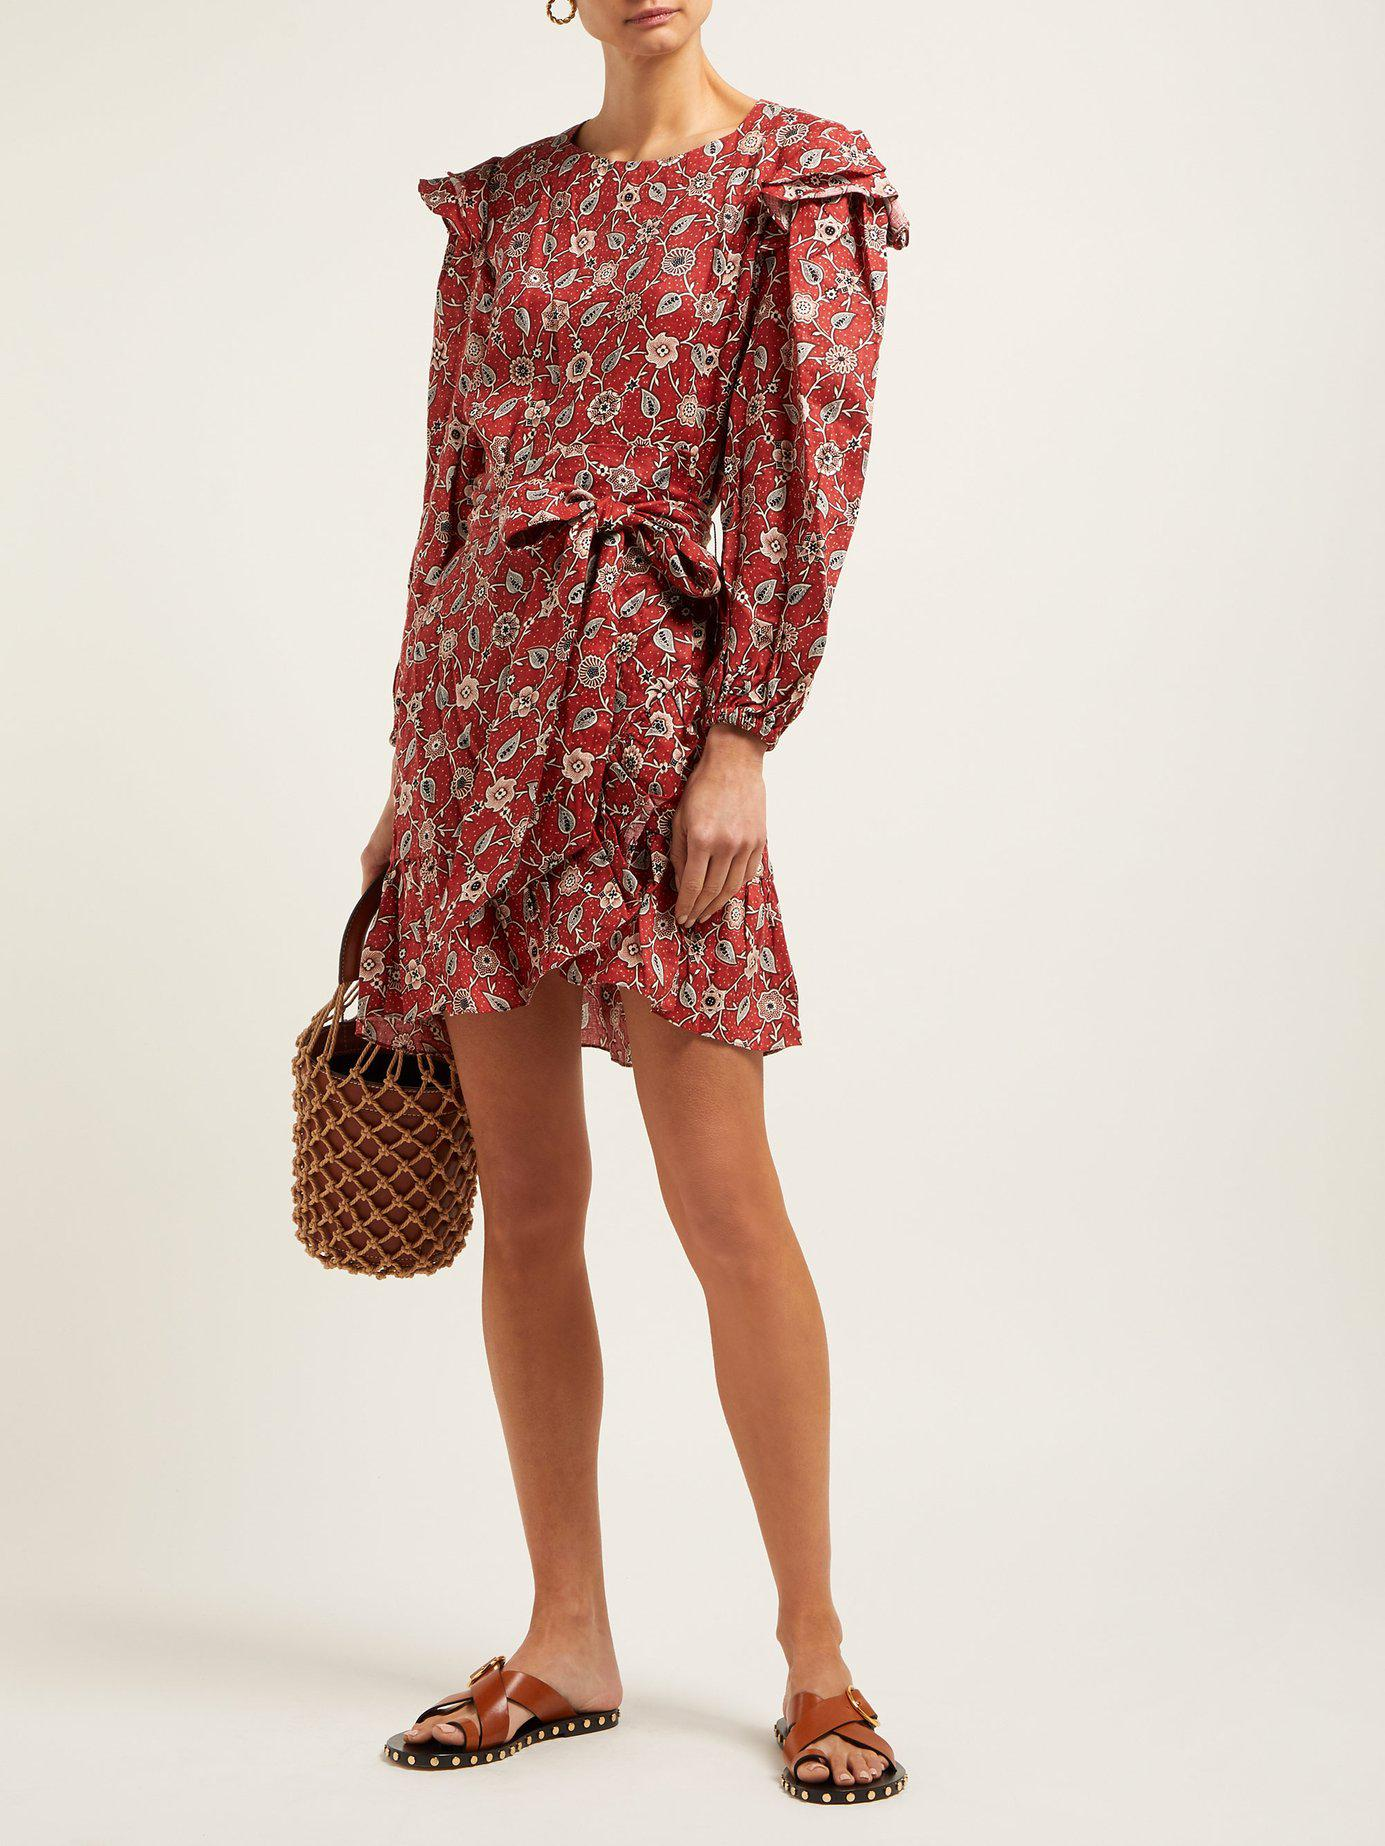 aa667259f1 Lyst - Étoile Isabel Marant Telicia Floral Print Linen Mini Dress in Red